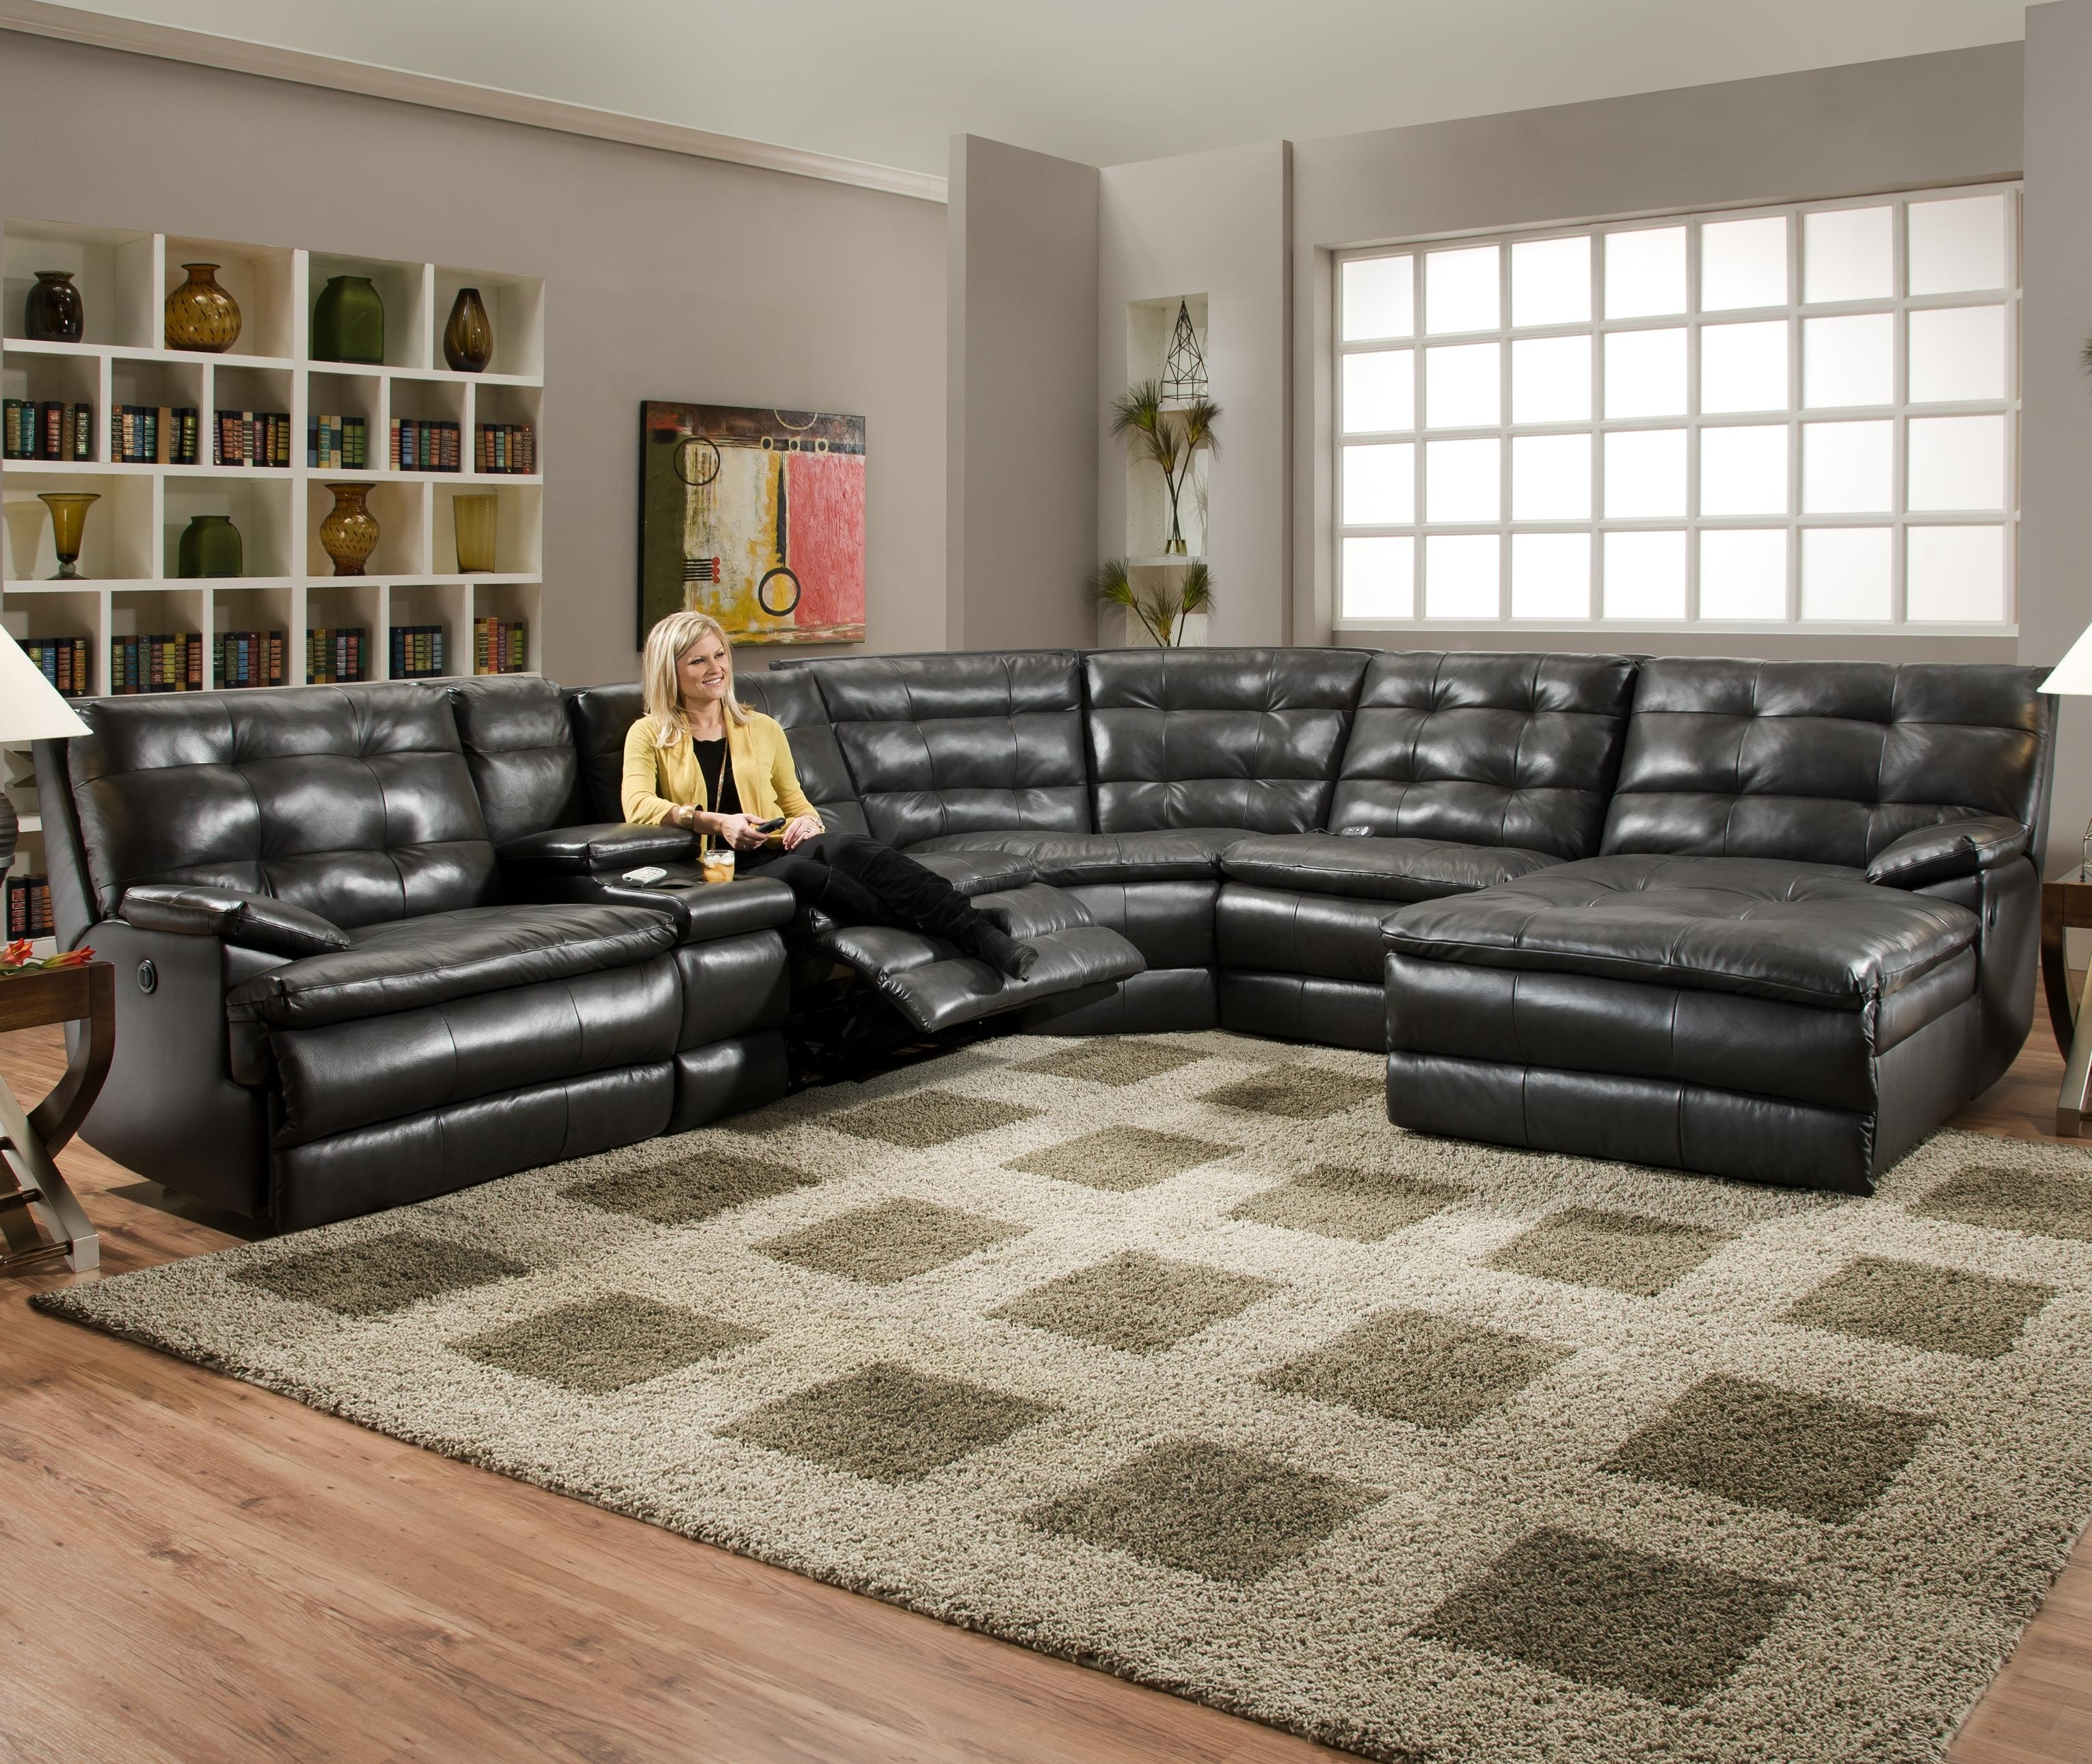 Luxurious Tufted Leather Sectional Sofa In Classy Black Color With Regarding Sectional Sofas With Power Recliners (View 9 of 10)